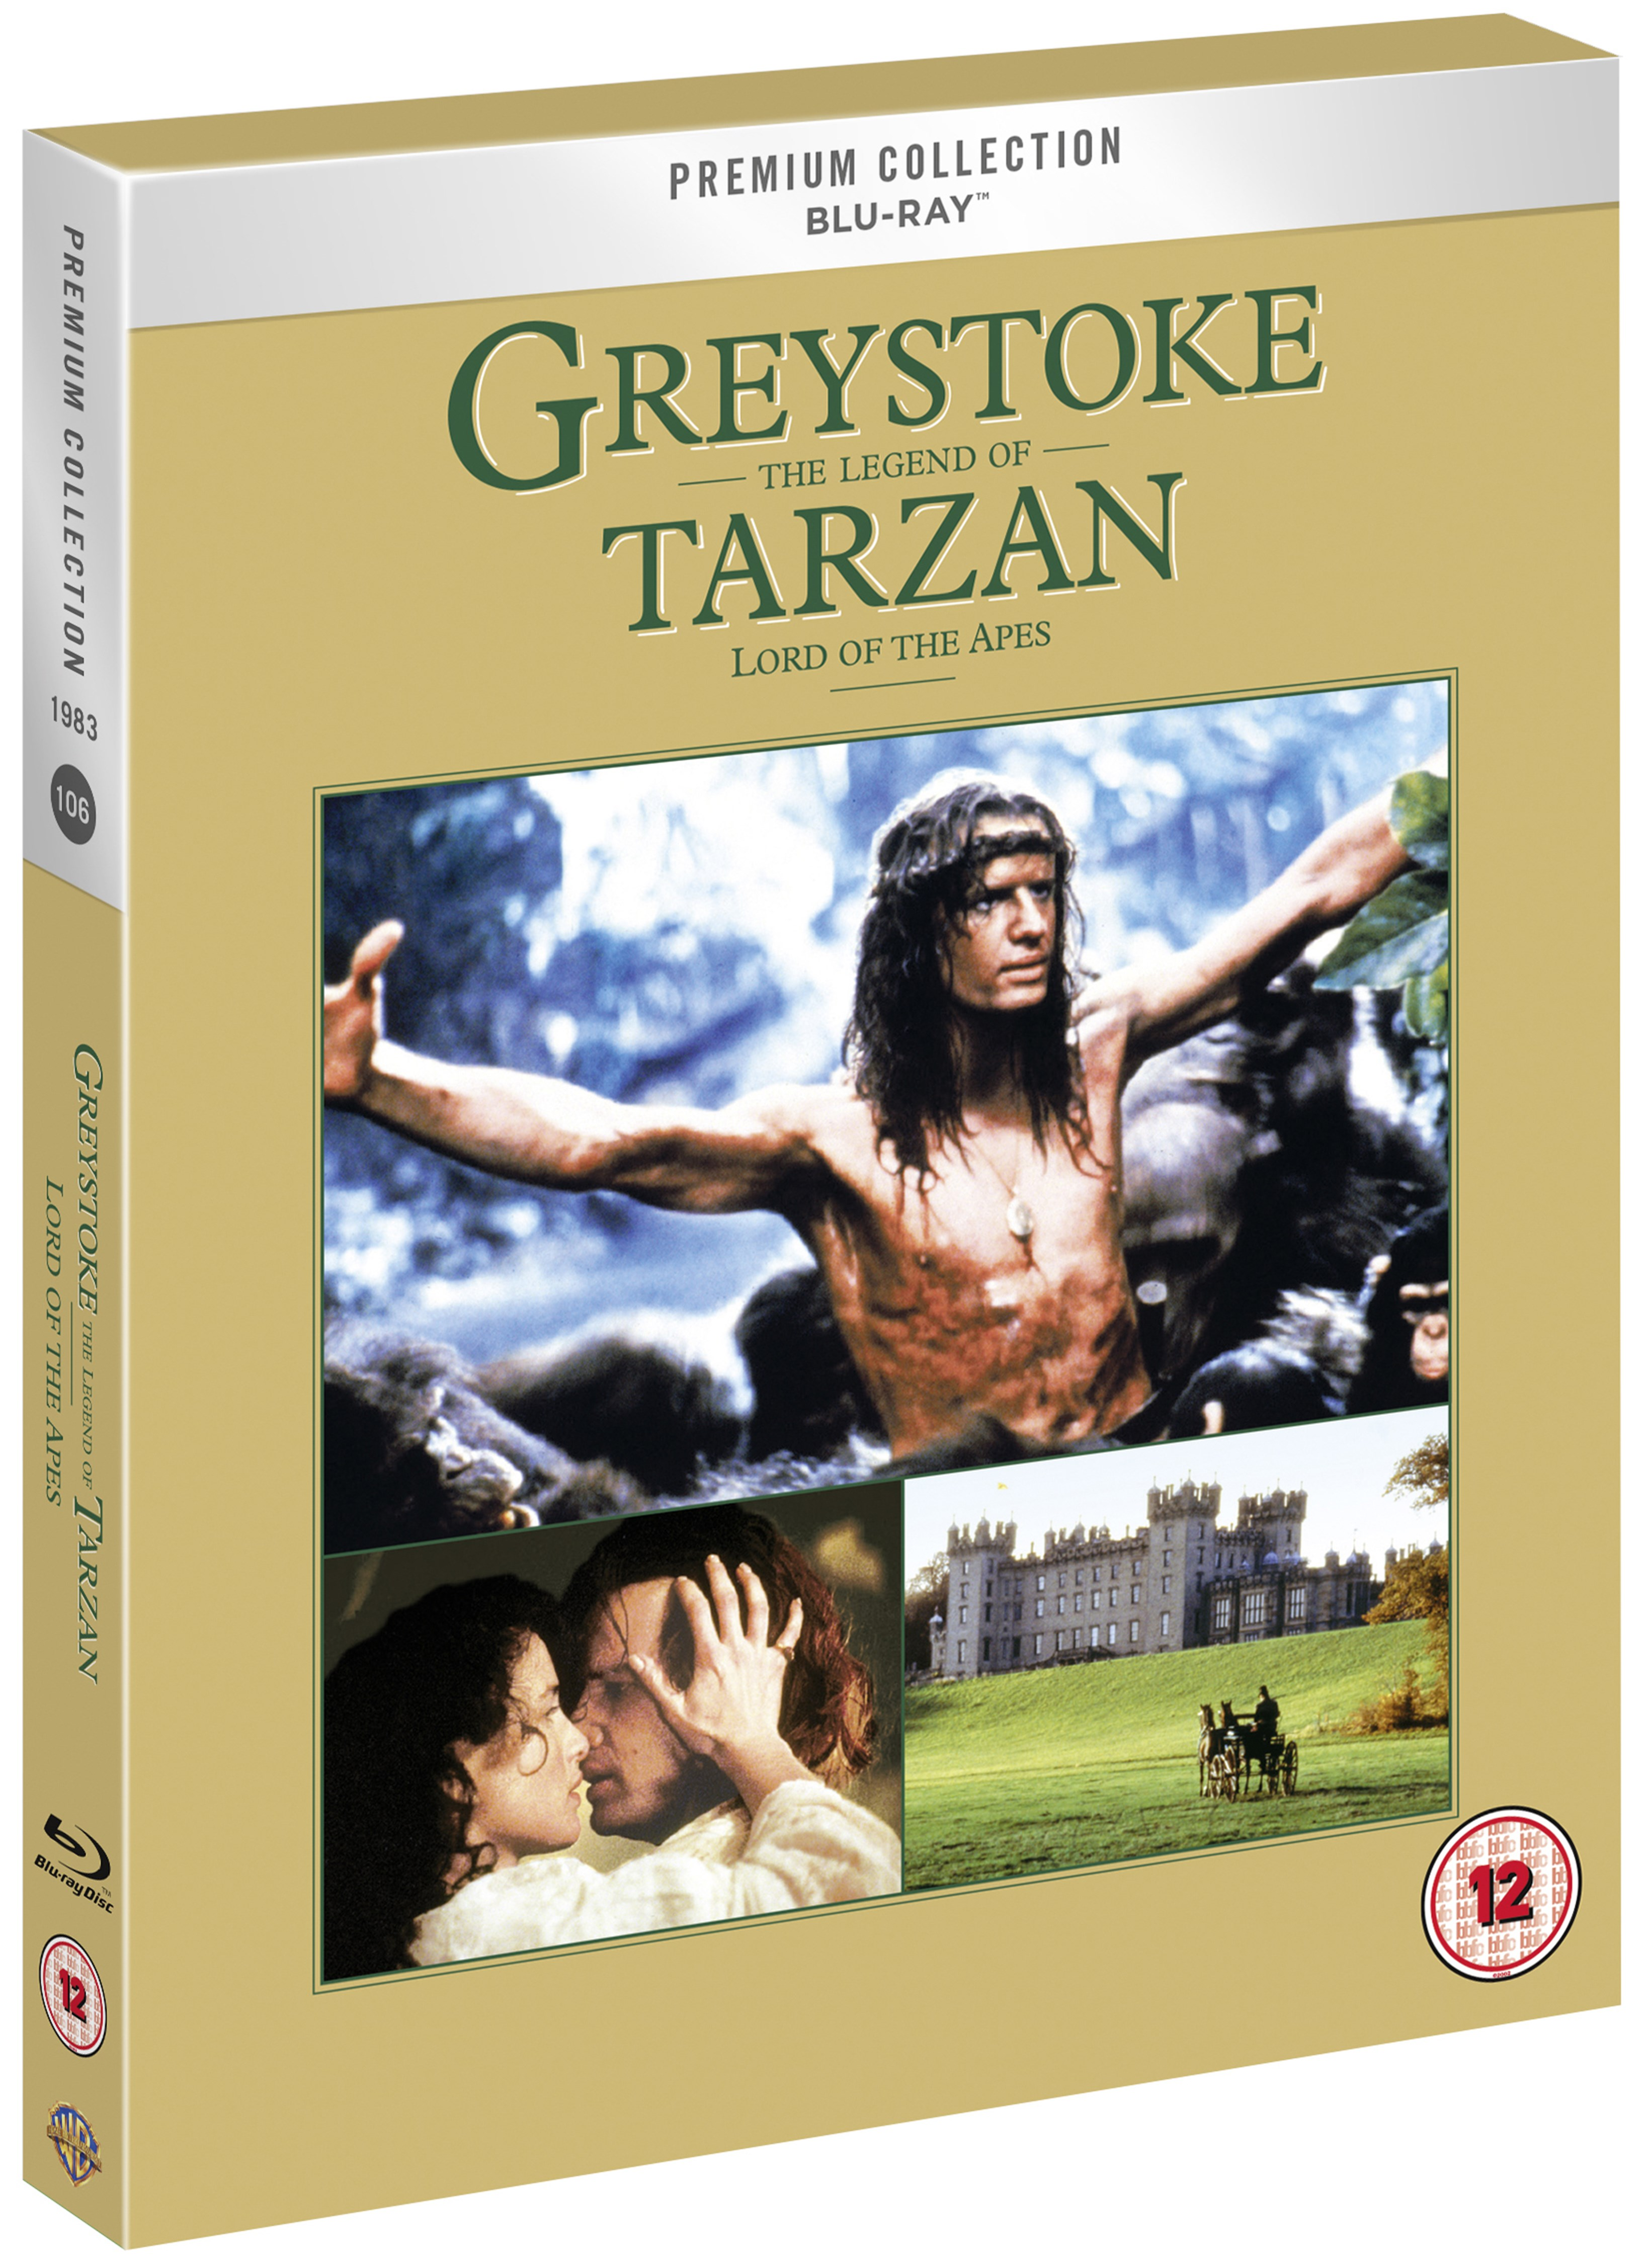 Greystoke - The Legend of Tarzan (hmv Exclusive) - The Premium Collection - 2